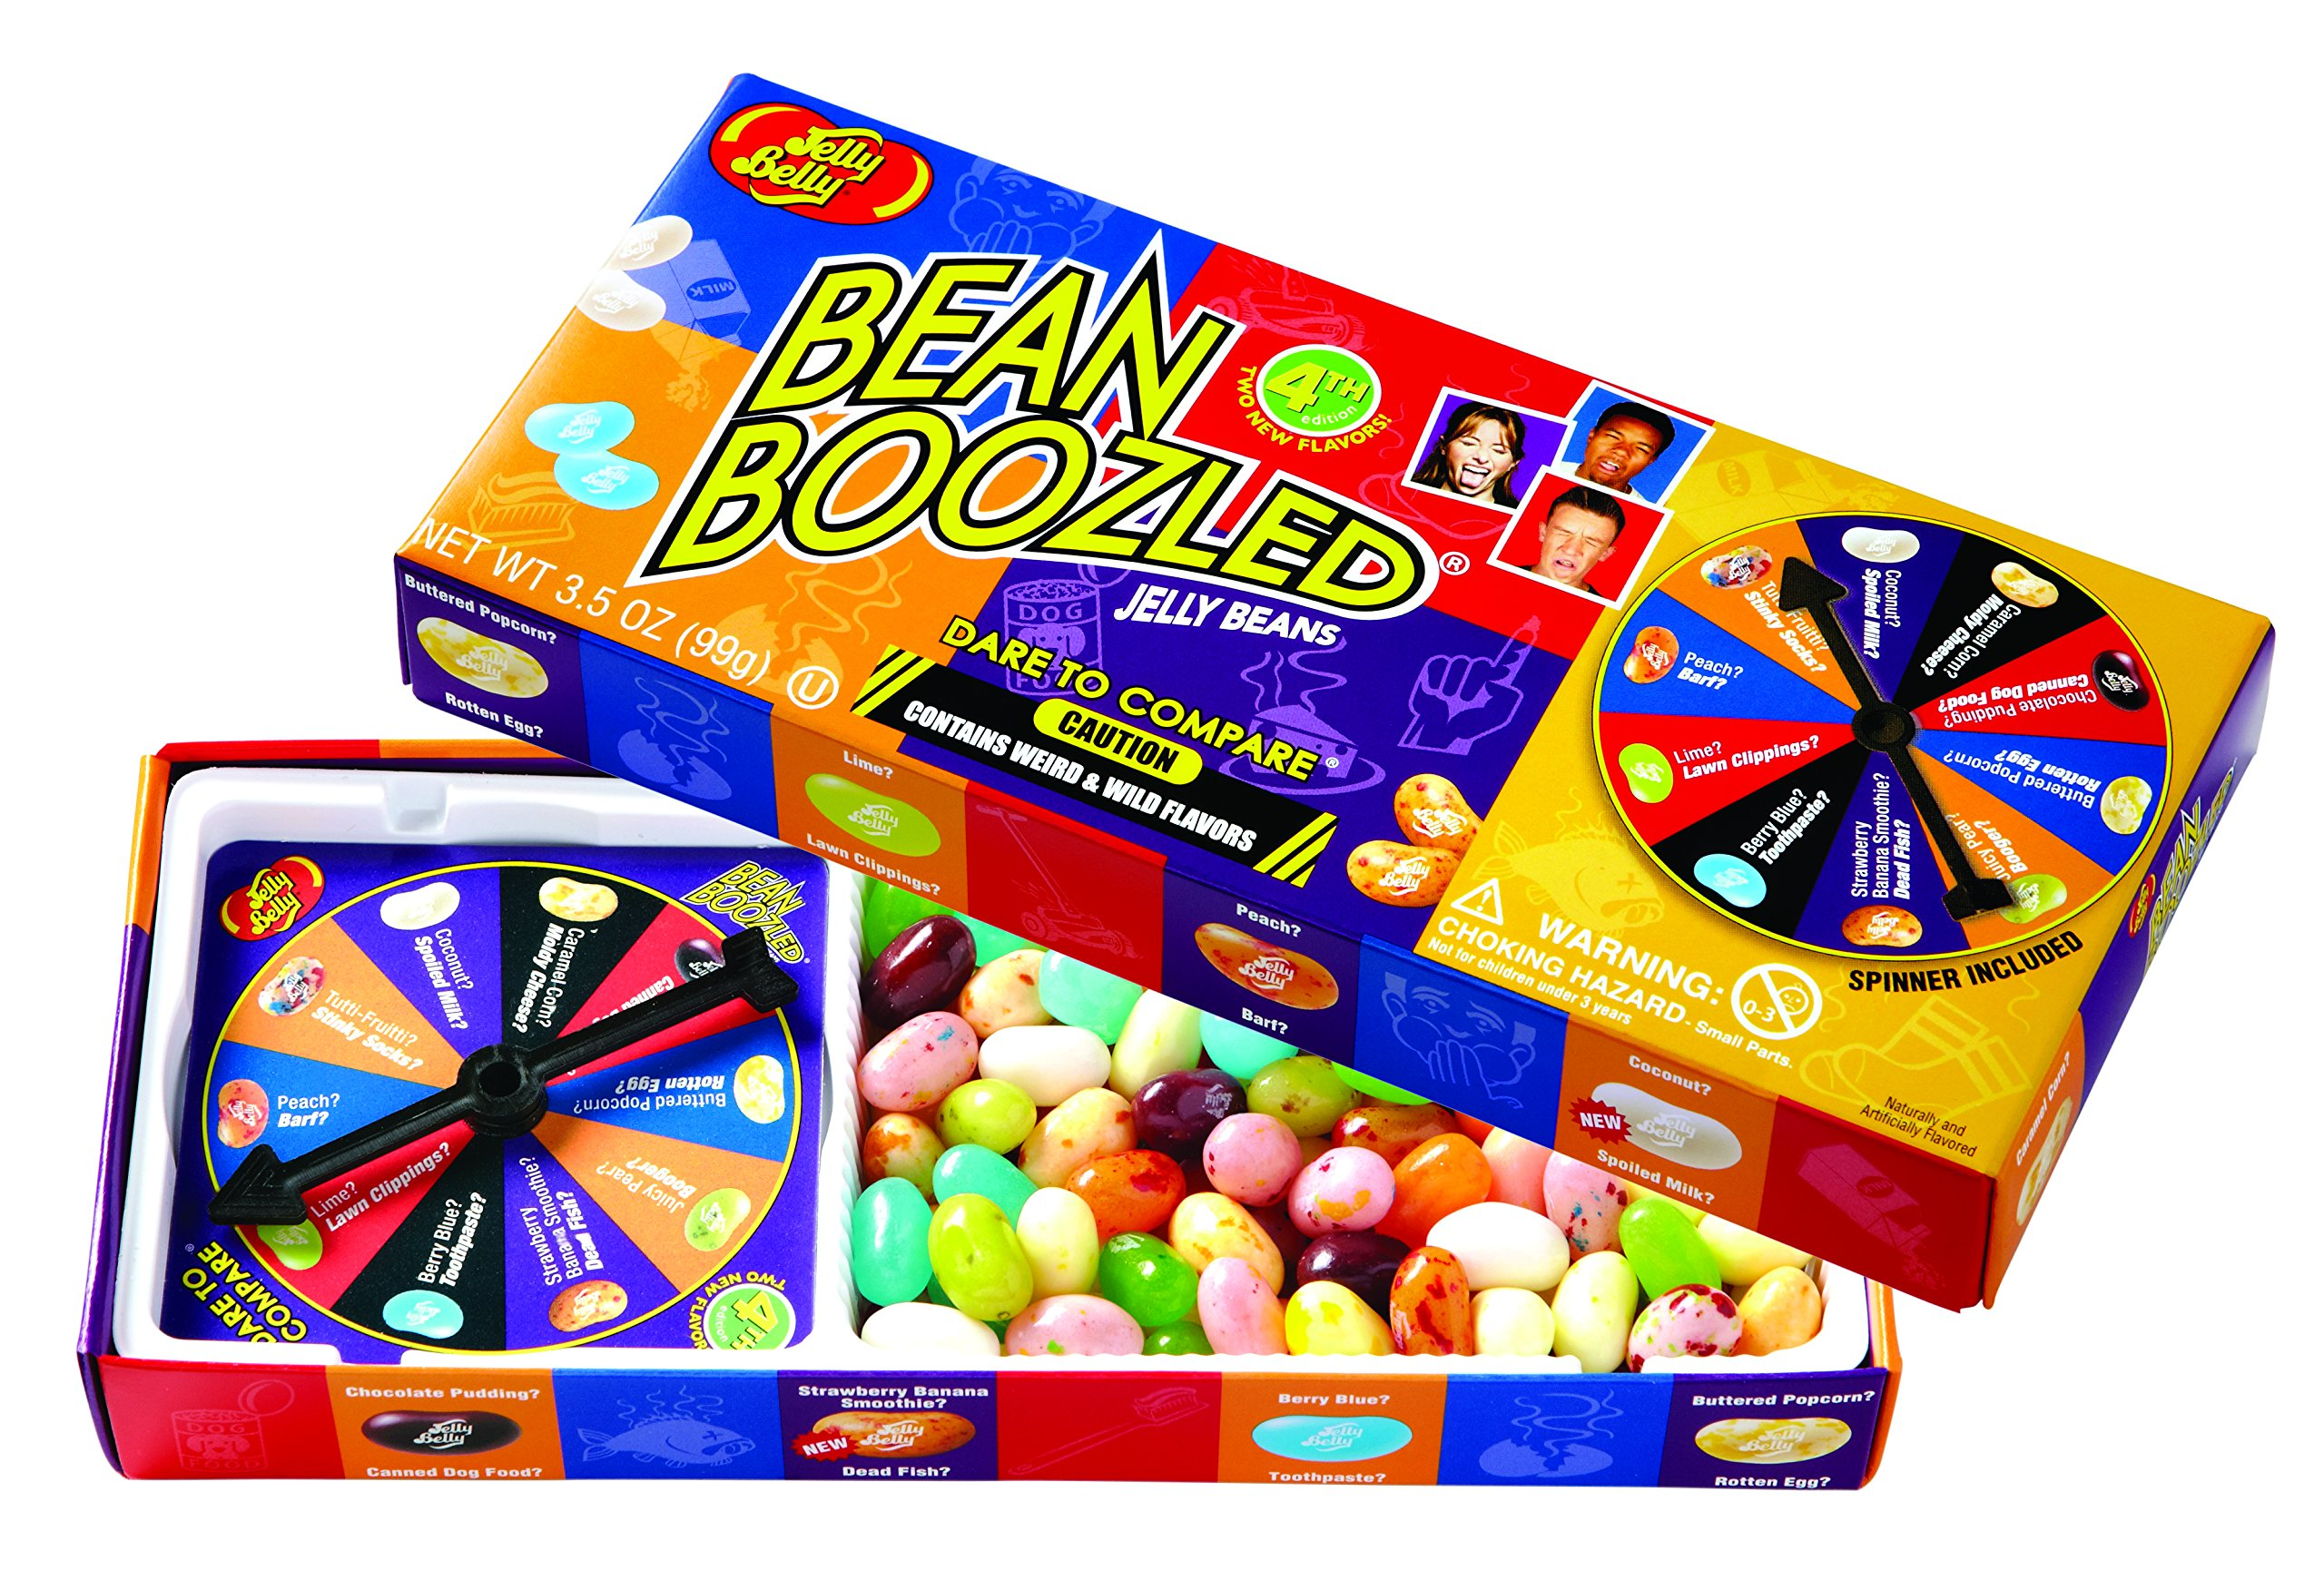 Jelly Belly BeanBoozled Jelly Beans Spinner Gift Box, 4th Edition, 3.5-oz, 10 Pack by Jelly Belly